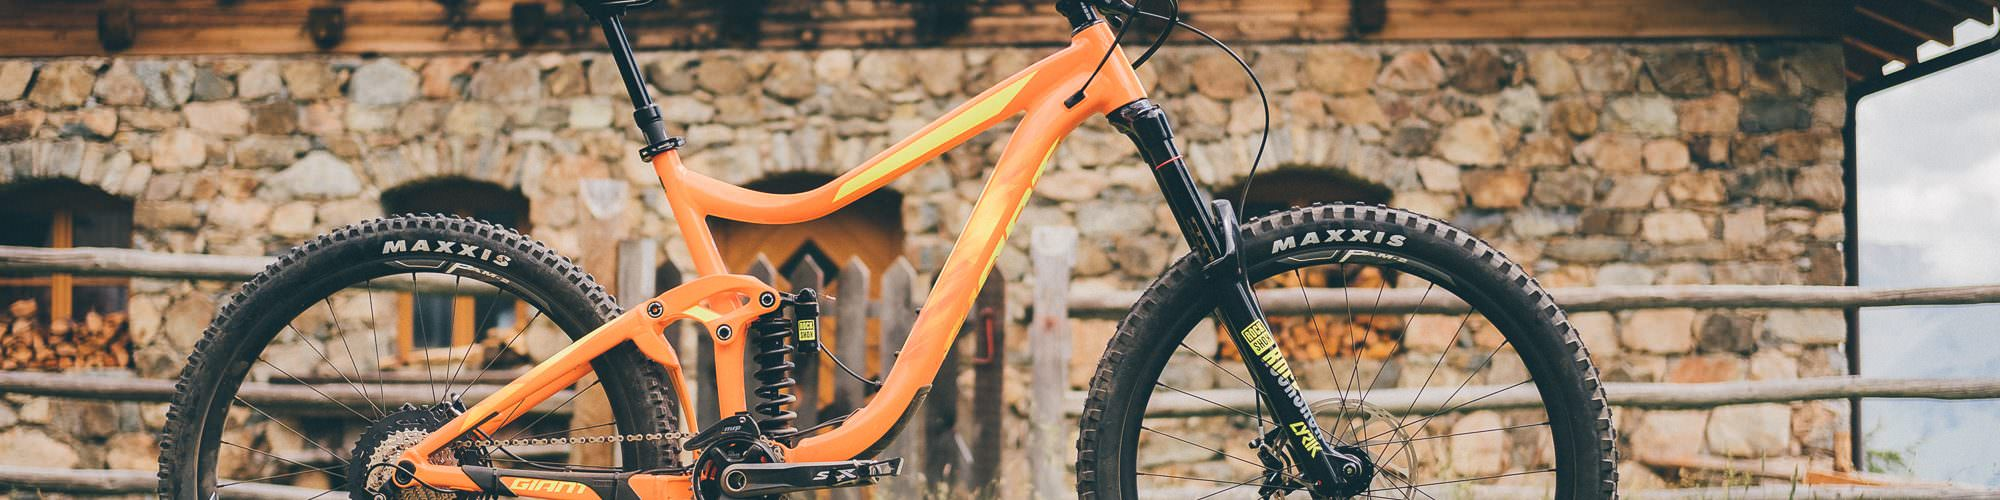 5dadc0ad07a Giant Reign SX 2018 Review – The Devil Is in the Details | ENDURO ...